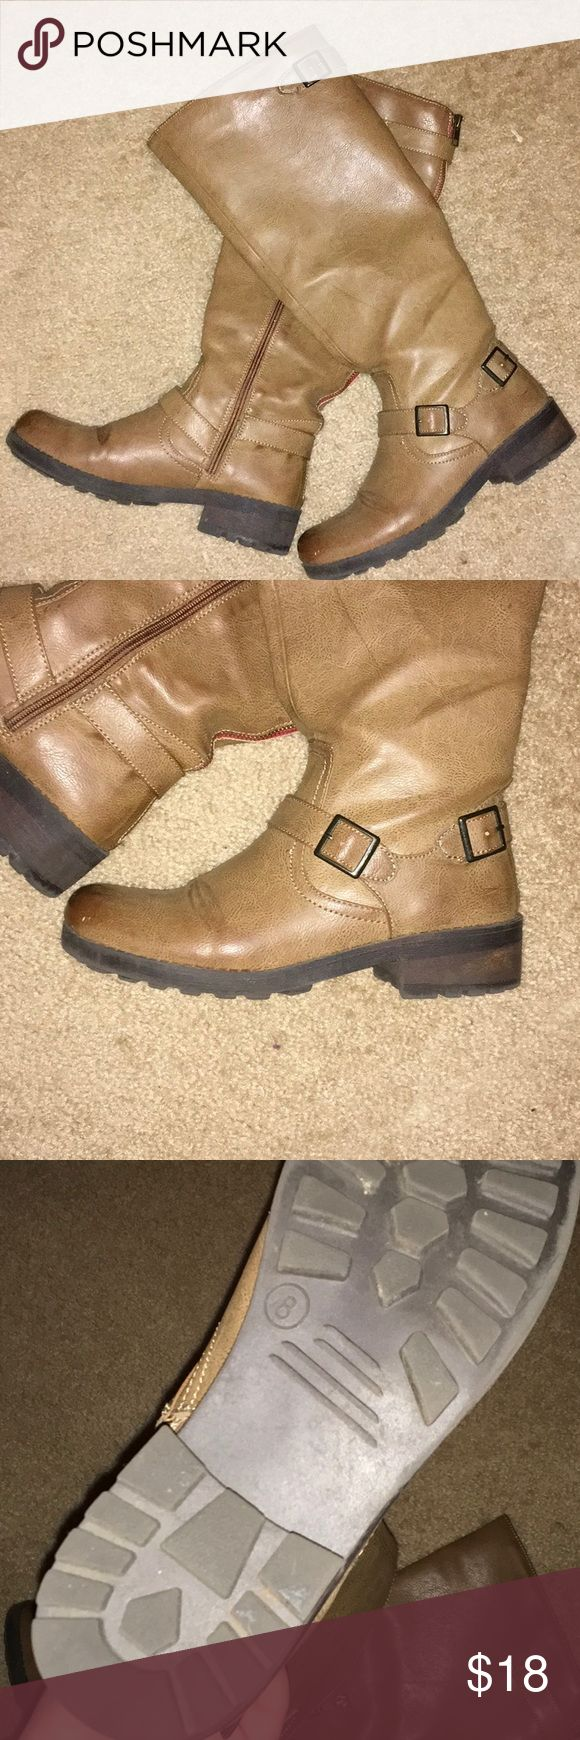 Target boots In used condition. Has a detail zipper with red on the back. Functioning zipper on the side Shoes Heeled Boots